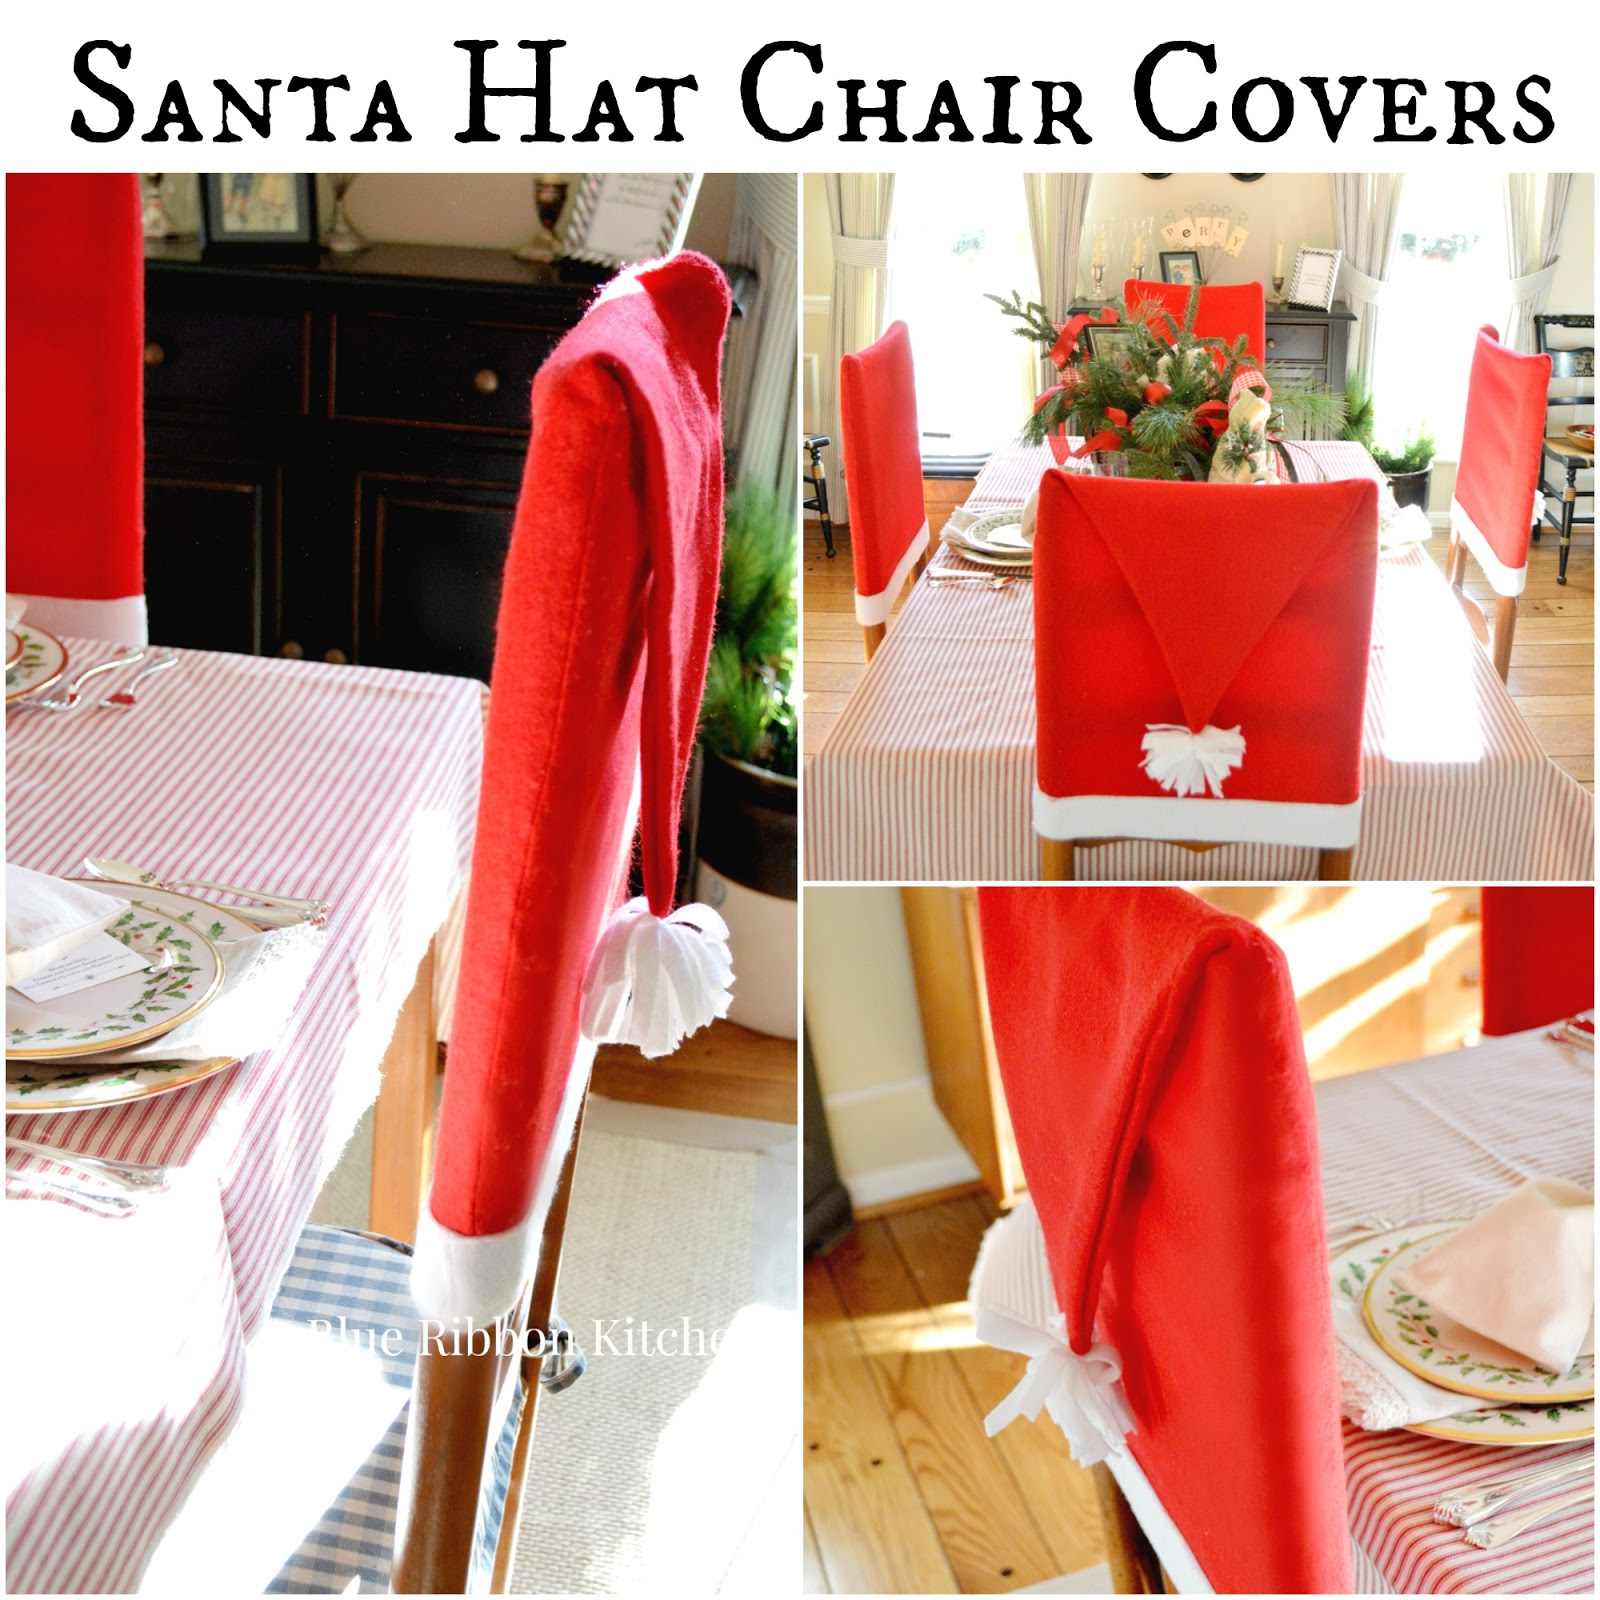 Merry Christmas Chair Covers Beach Chairs Clearance Blue Ribbon Kitchen Santa Claus Is Coming Hat